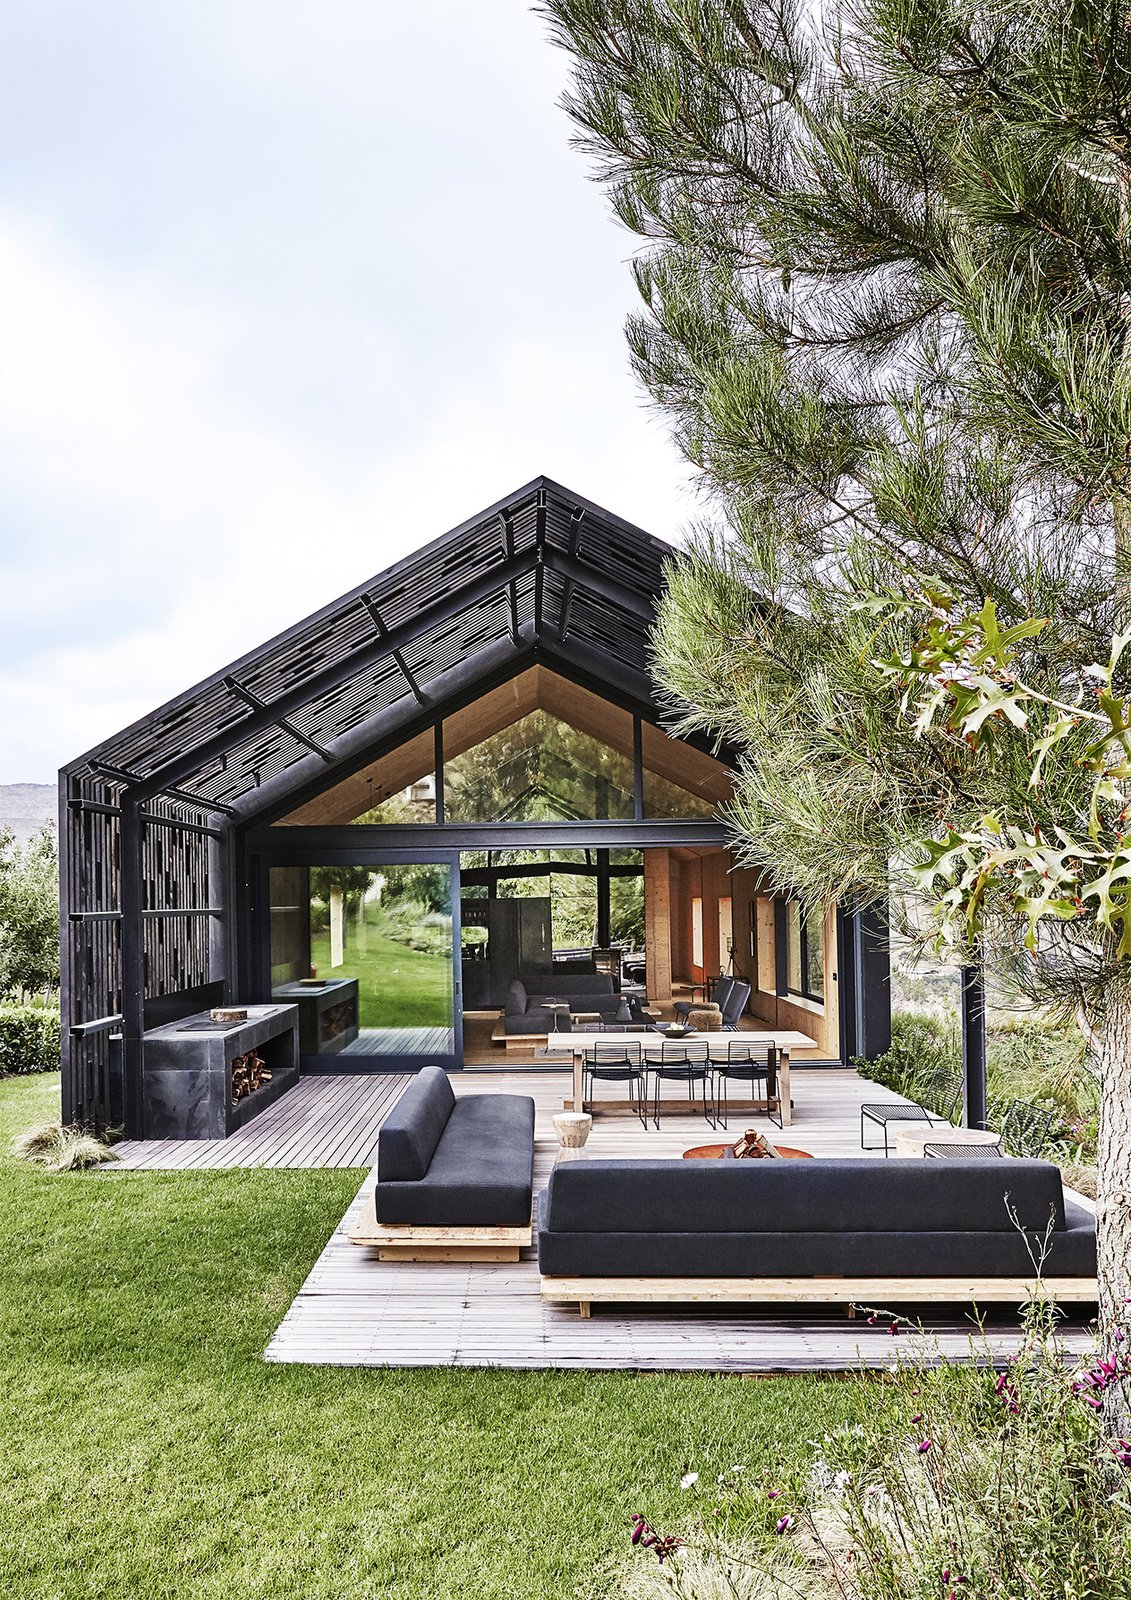 Exterior, House Building Type, Wood Siding Material, and Gable RoofLine A blackened-timber pergola extends from the modern barn that architect Greg Scott designed for Jody and Deirdre Aufrichtig in the Elgin Valley, an apple- and grape-growing region near Cape Town. Made of narrow slats stabilized with randomly scattered blocks of wood, it covers roughly half of the outdoor deck.  Photo 1 of 12 in A Hotelier Realizes a Modern Barn for His Family's Retreat in South Africa